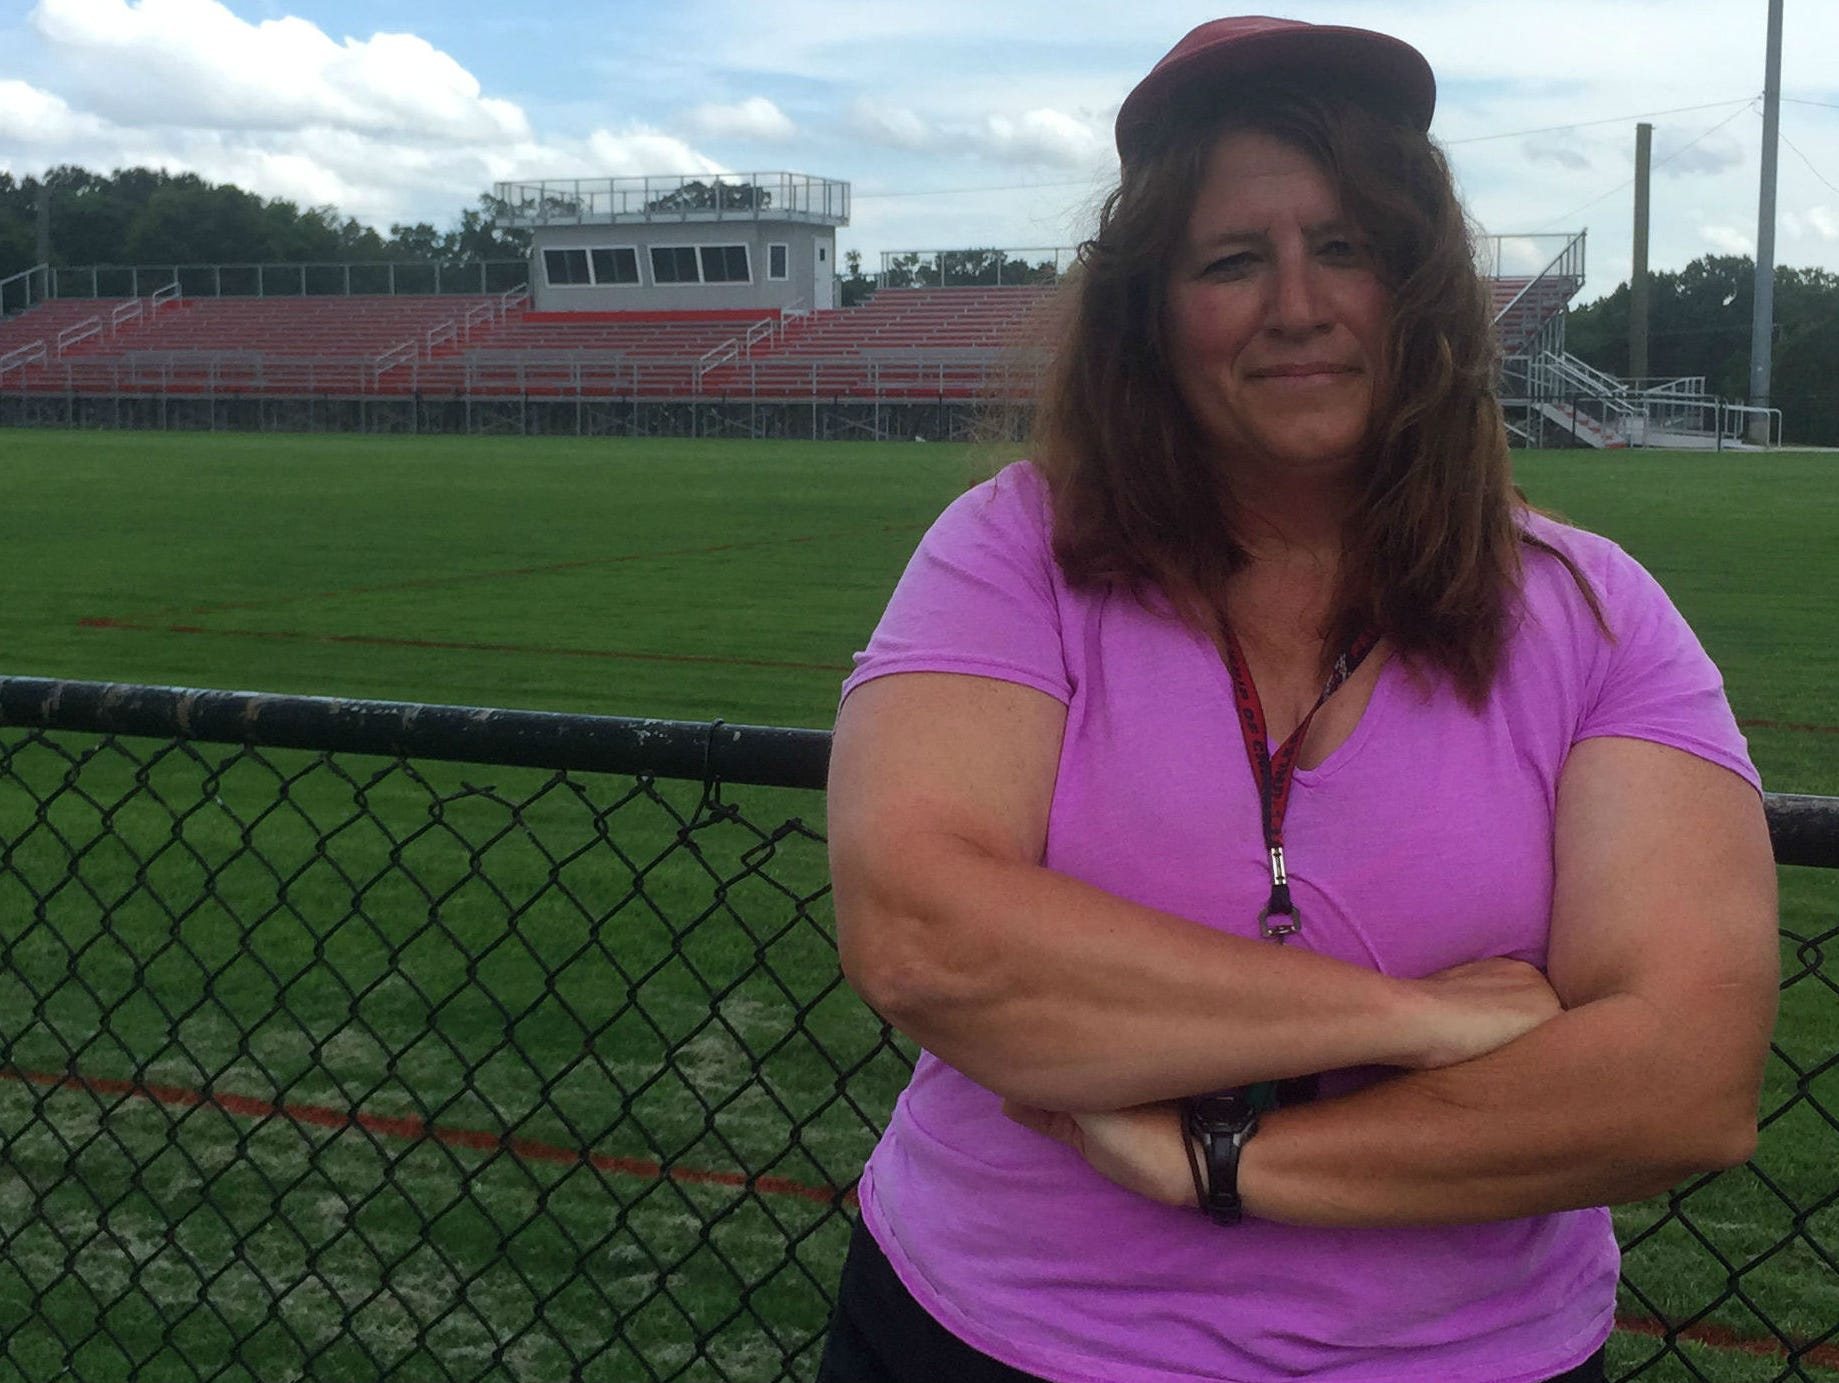 Glencliff football assistant coach Lisa Limper is happy Jen Walter finally broke the gender barrier for coaches in the NFL.